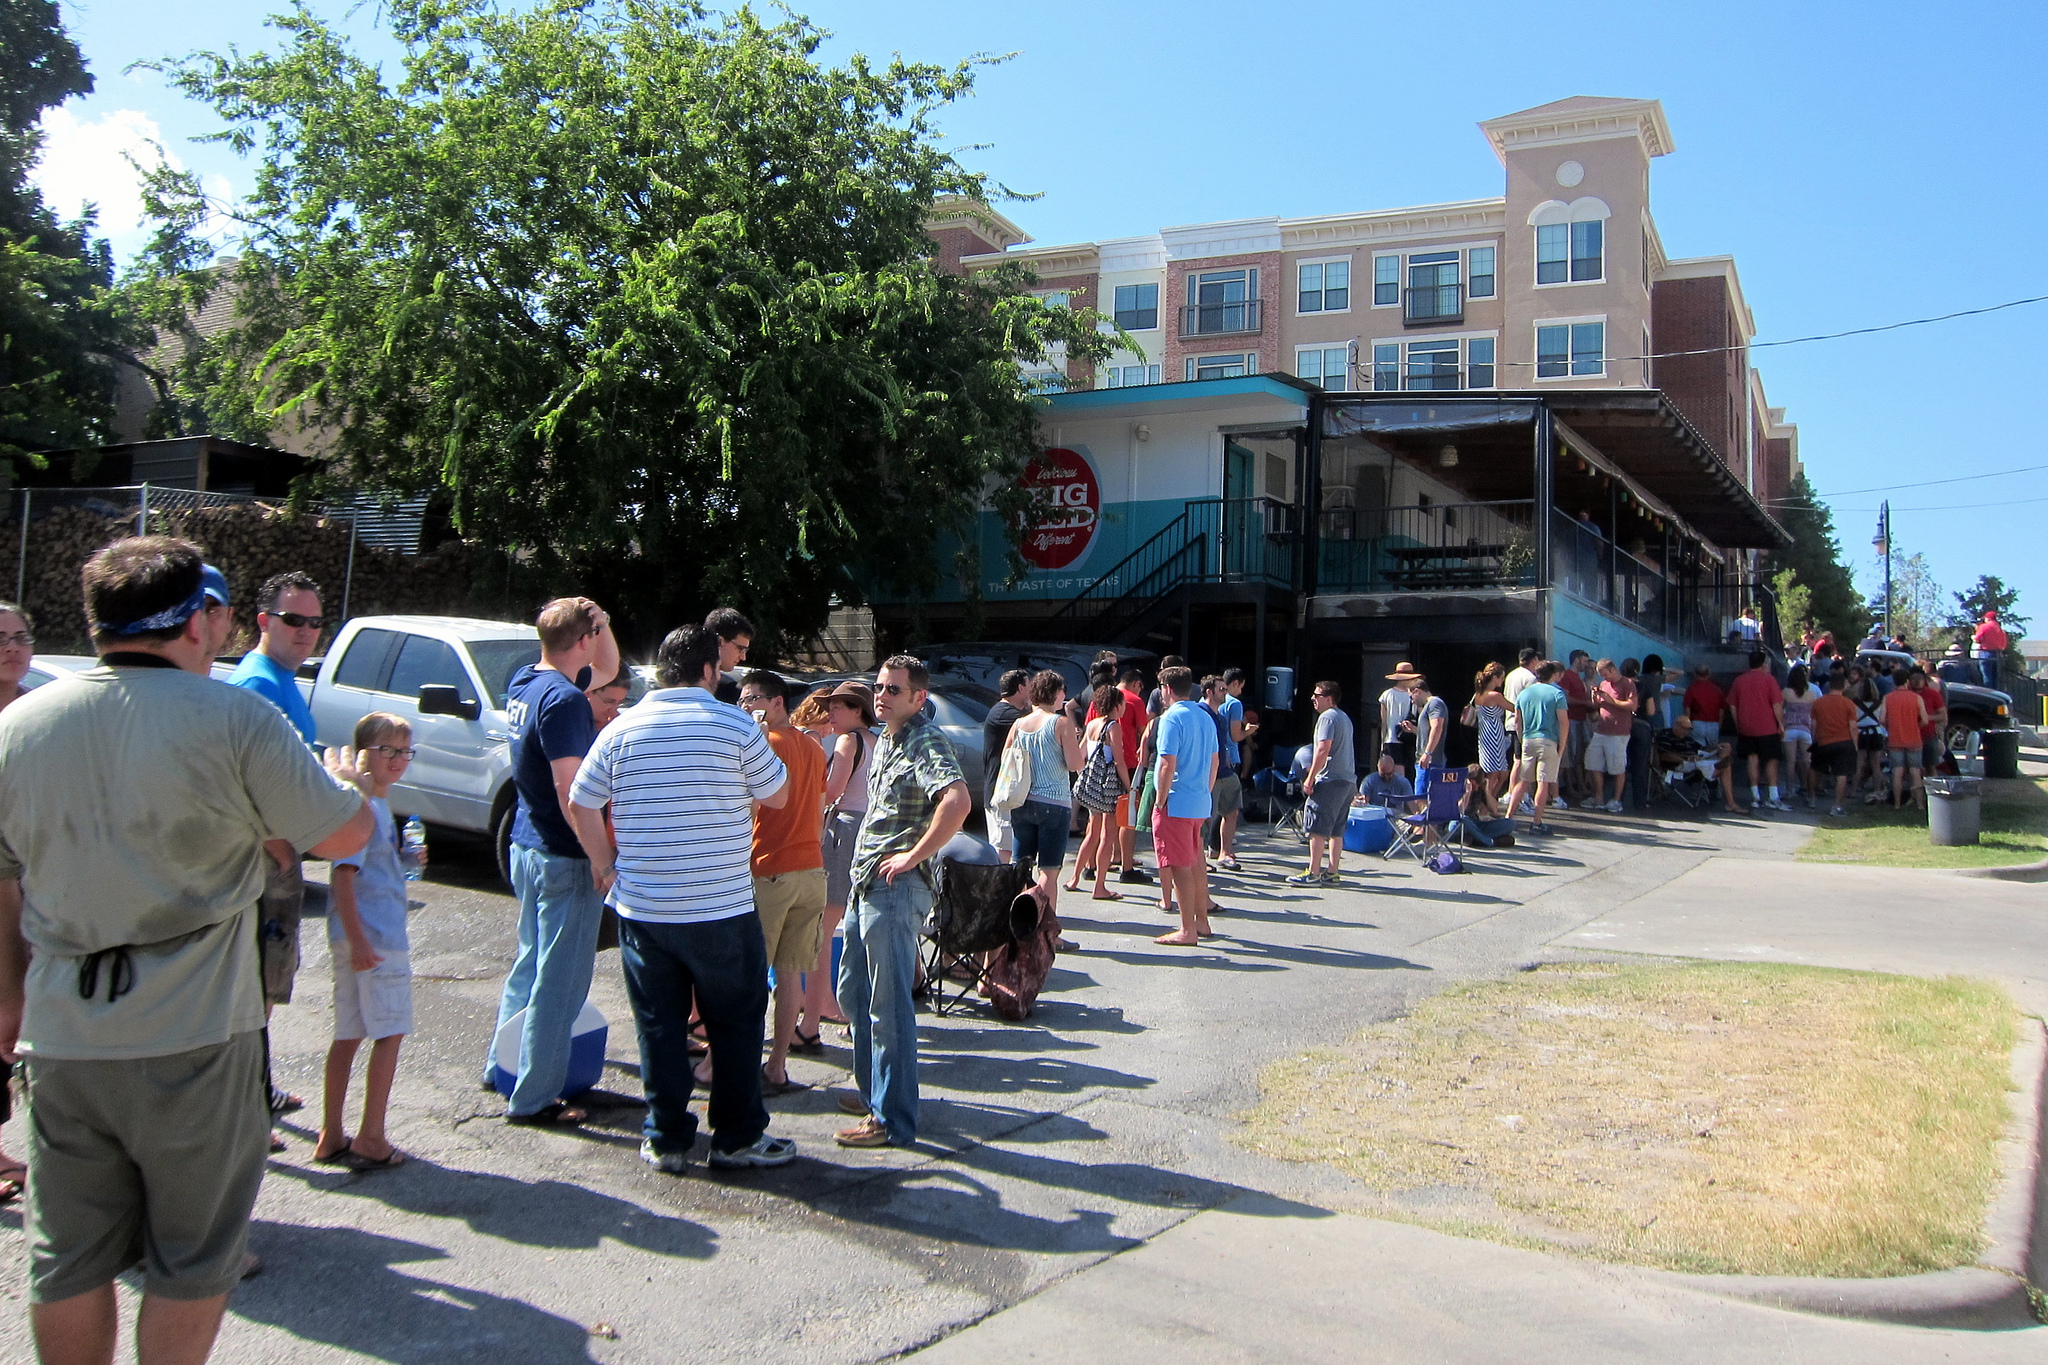 Waiting in line at Franklin's BBQ in Austin, Texas